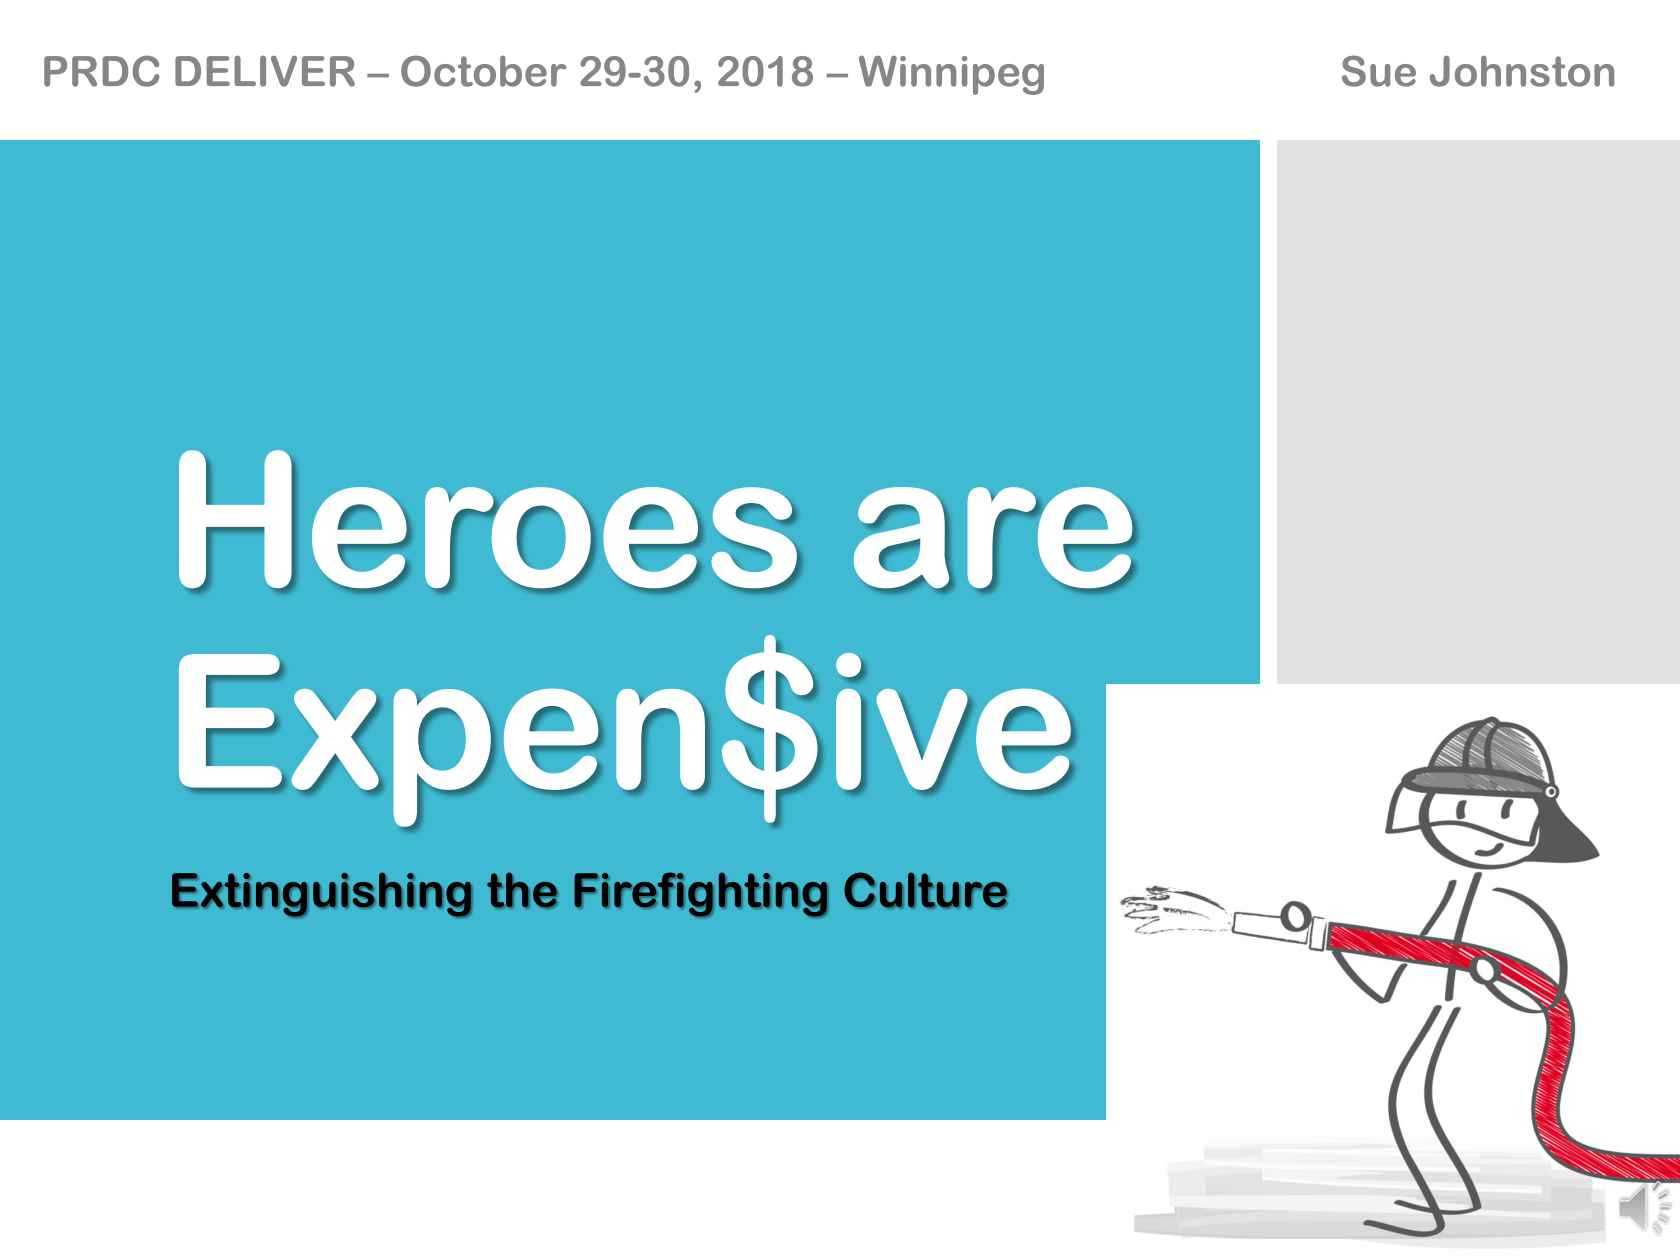 Heroes are Expensive - Extinguishing the Firefighting Culture